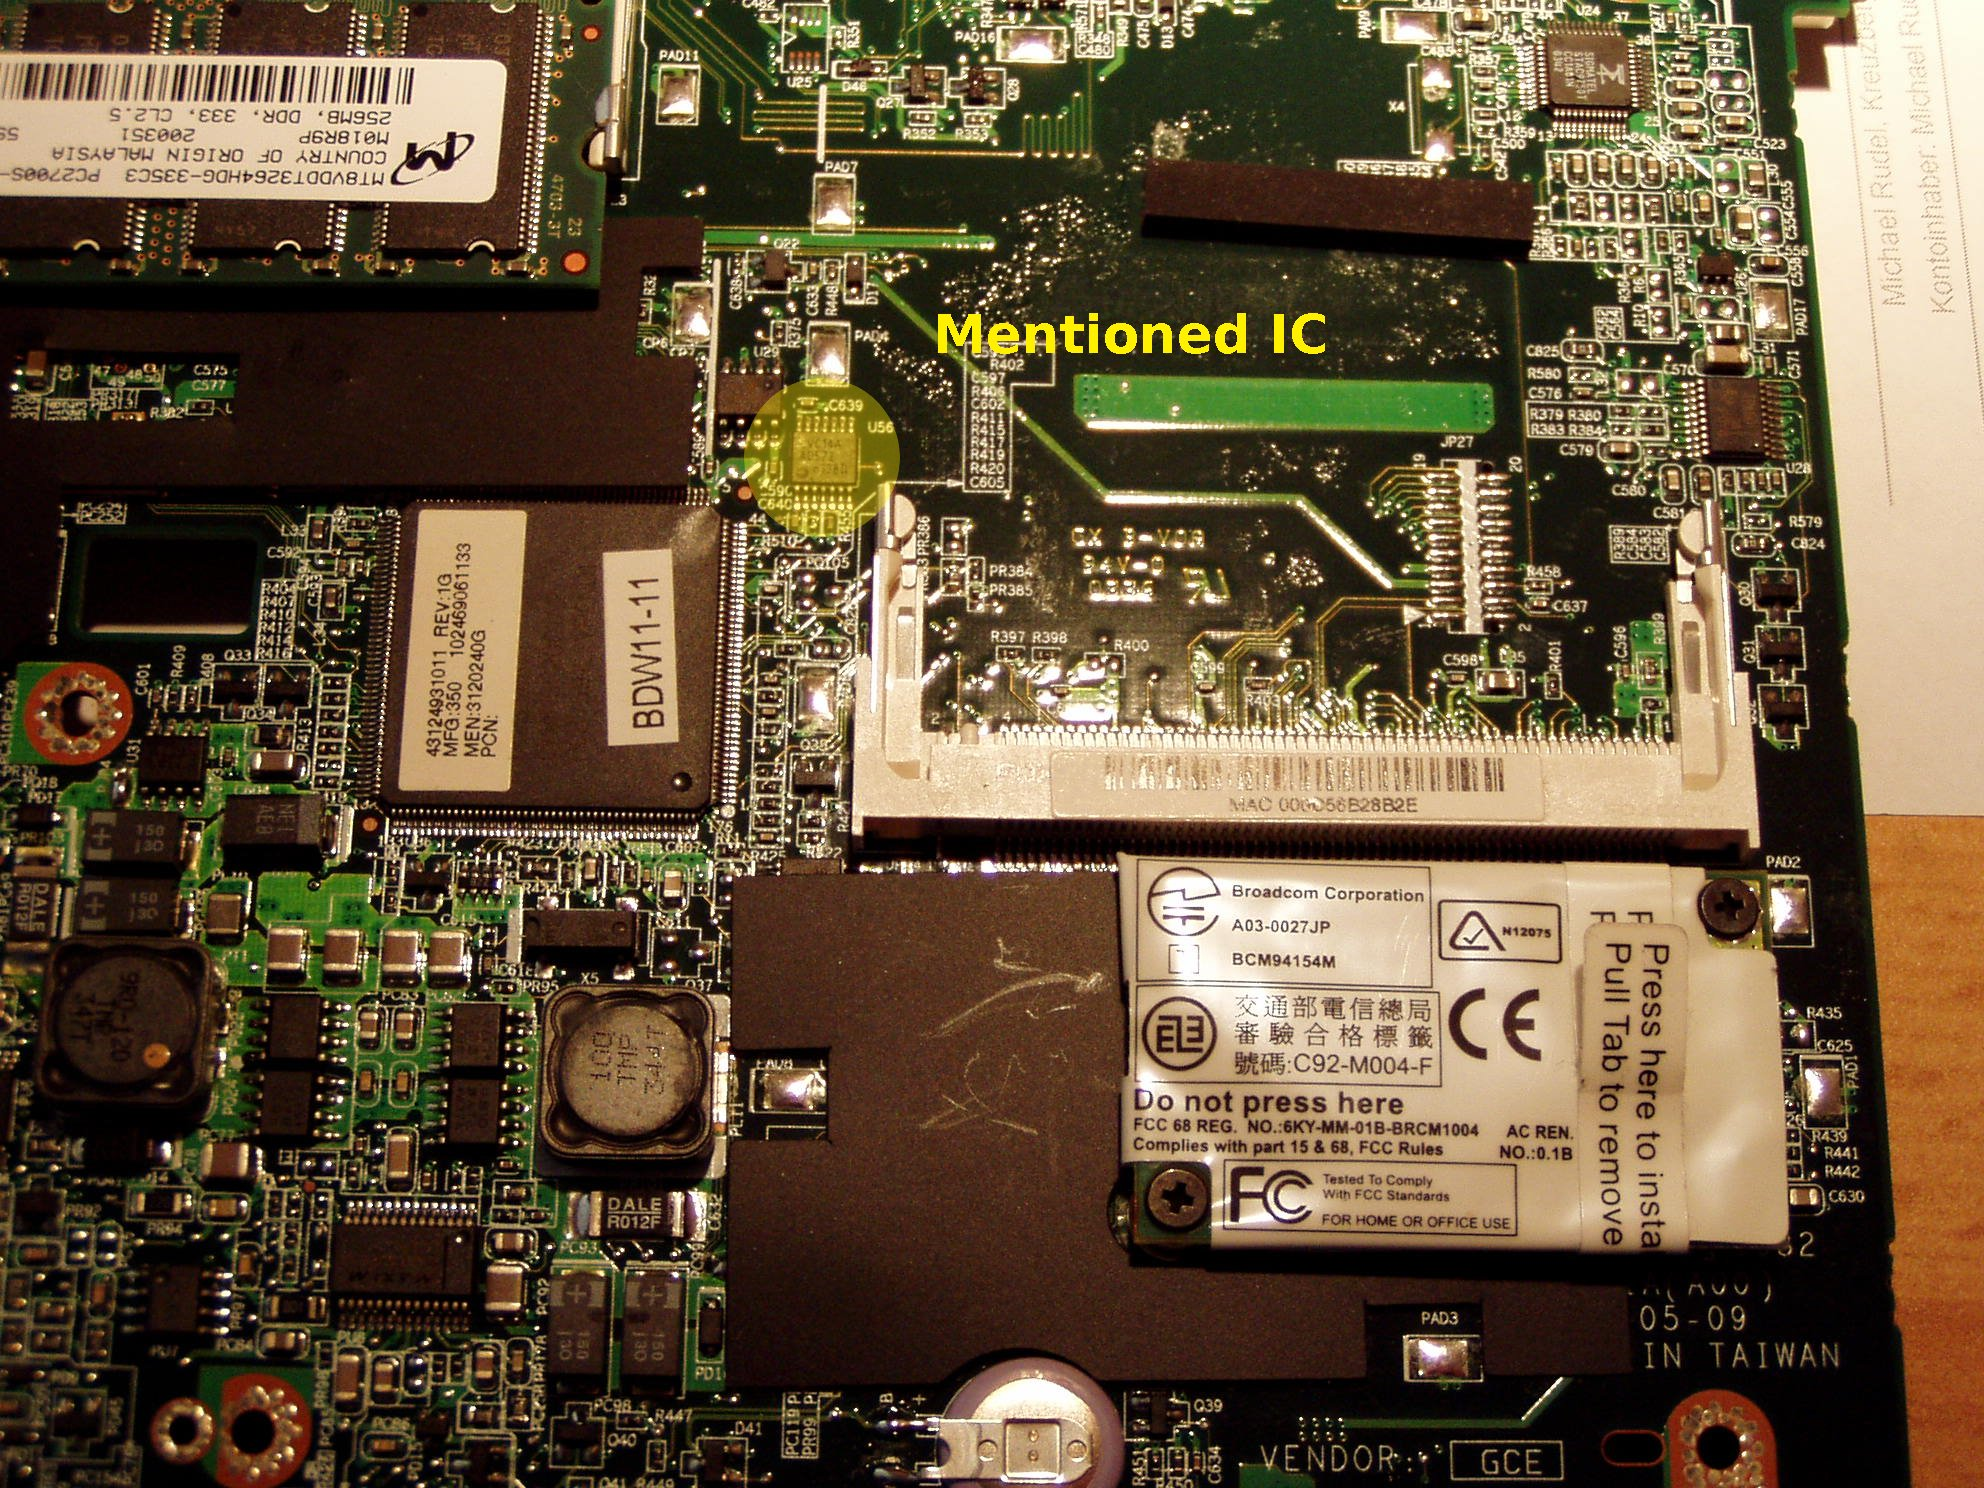 dell inspiron 530 motherboard diagram freightliner m2 wiring schematics 530s 38 images 27727791 free for you u2022